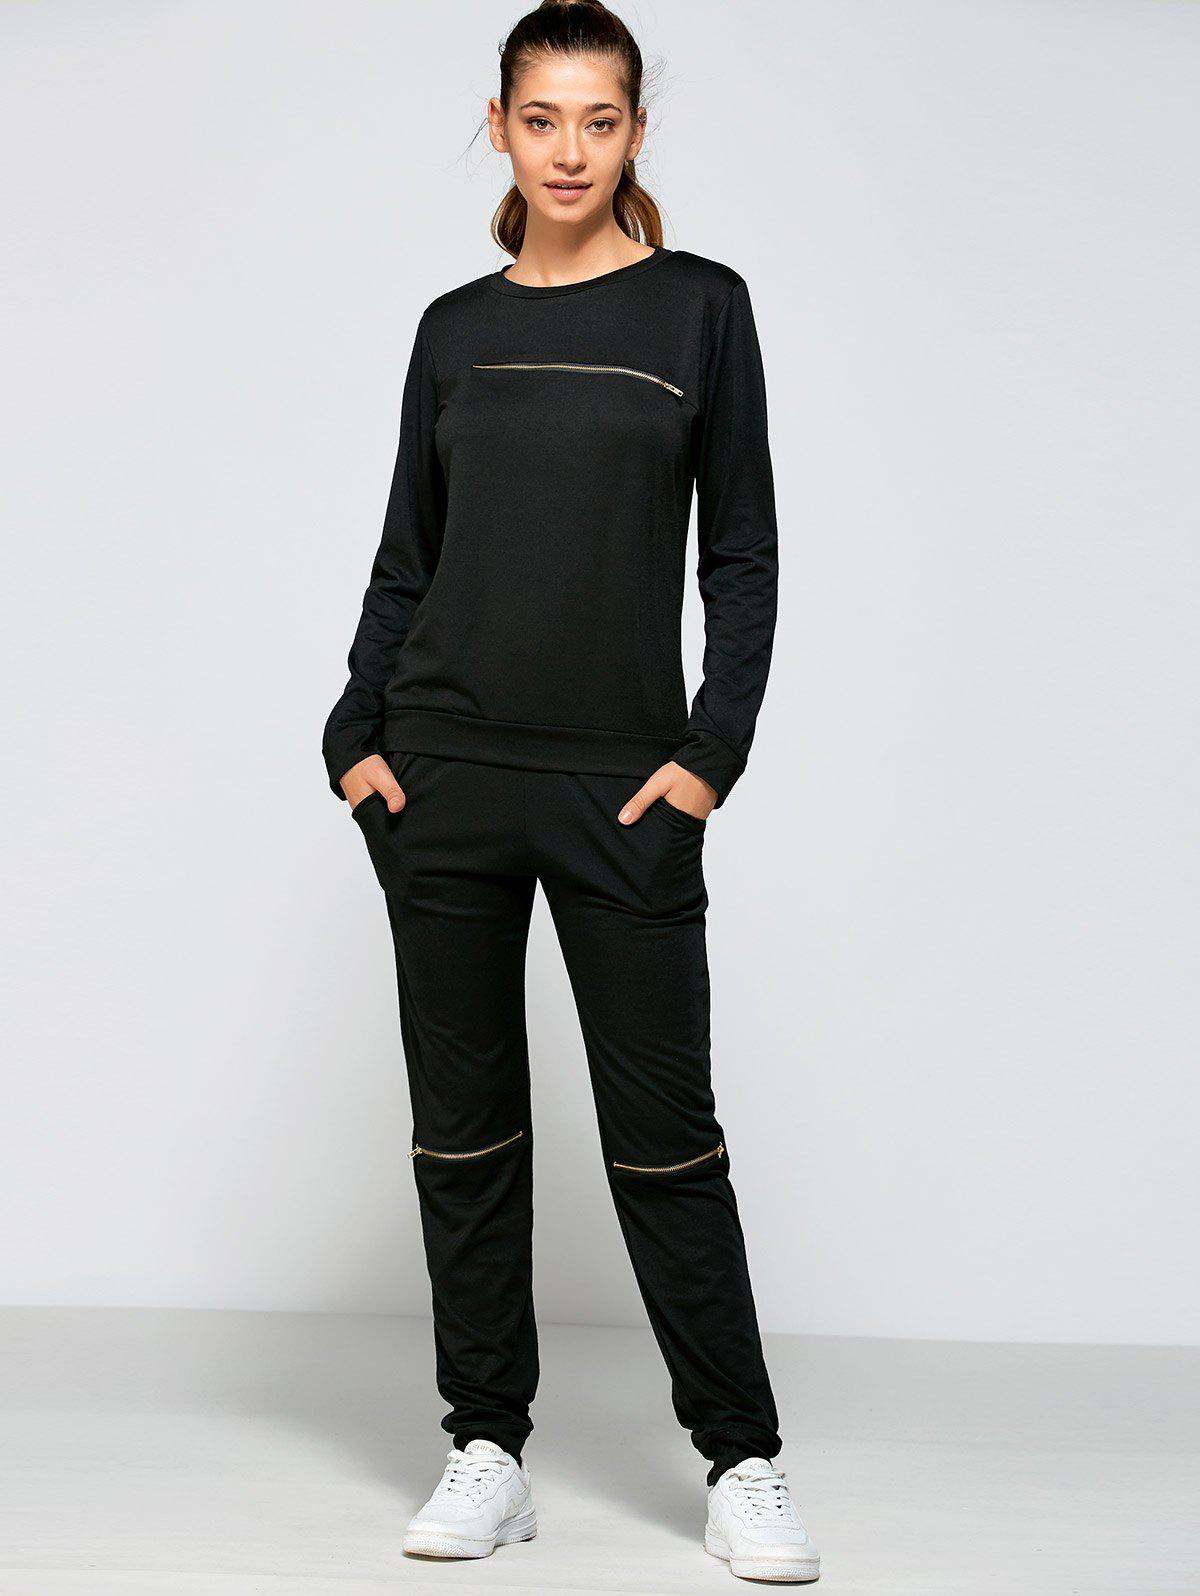 Shop Zippered Sweatshirt and Pants with Pocket